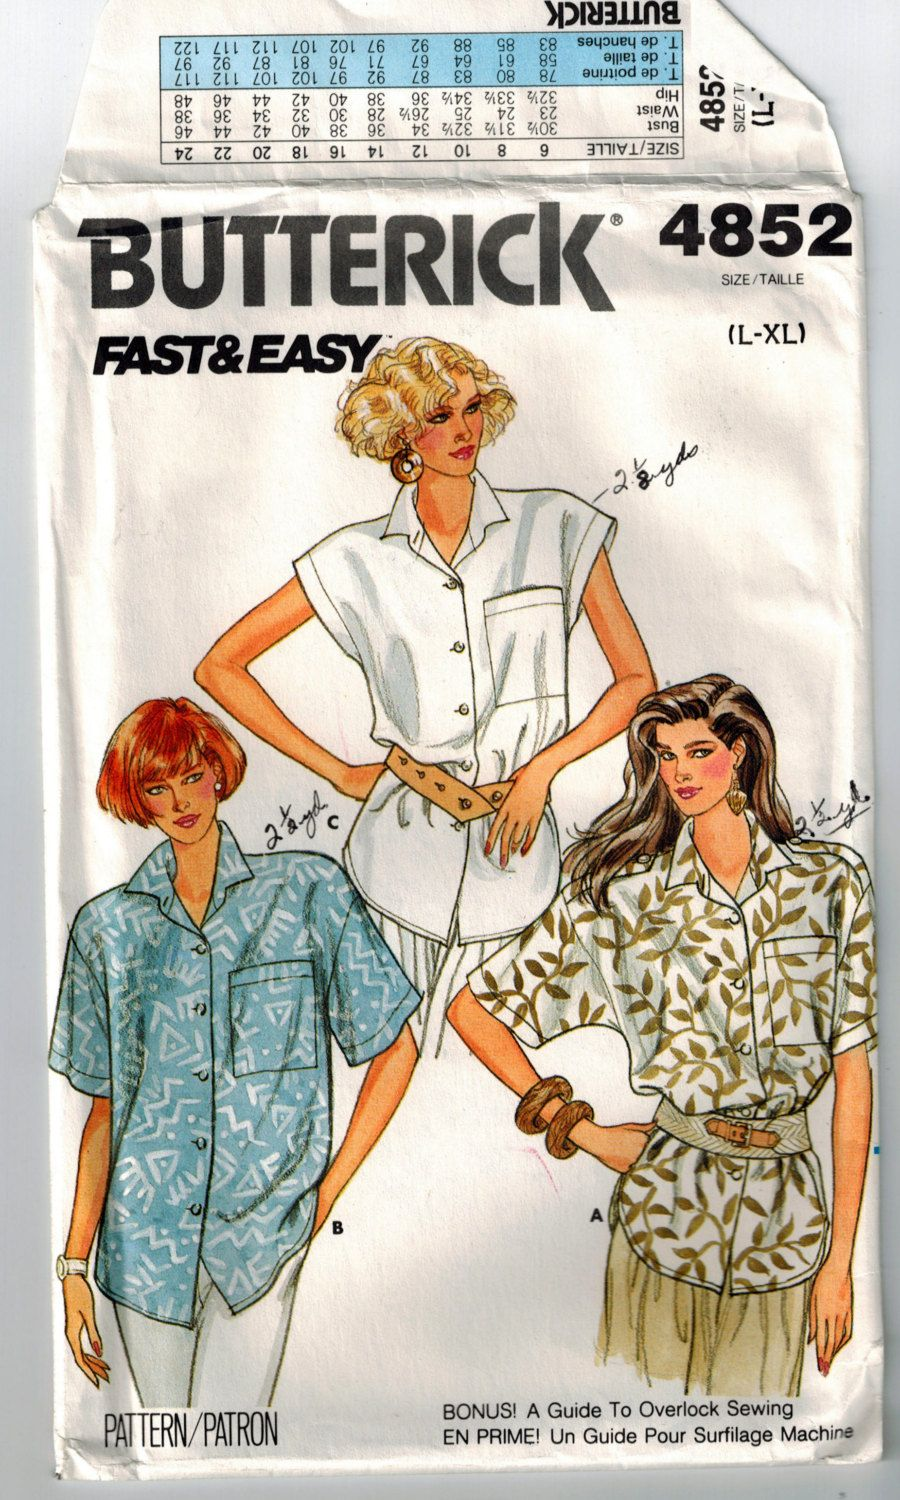 58b1b6173dd Vintage 80s Ladies Shirt Sewing Pattern Plus Size Bust 38-44 Loose Fitting  Summer Blouse Shaped Hemline Dropped Shoulders Epaulets Collar by ...